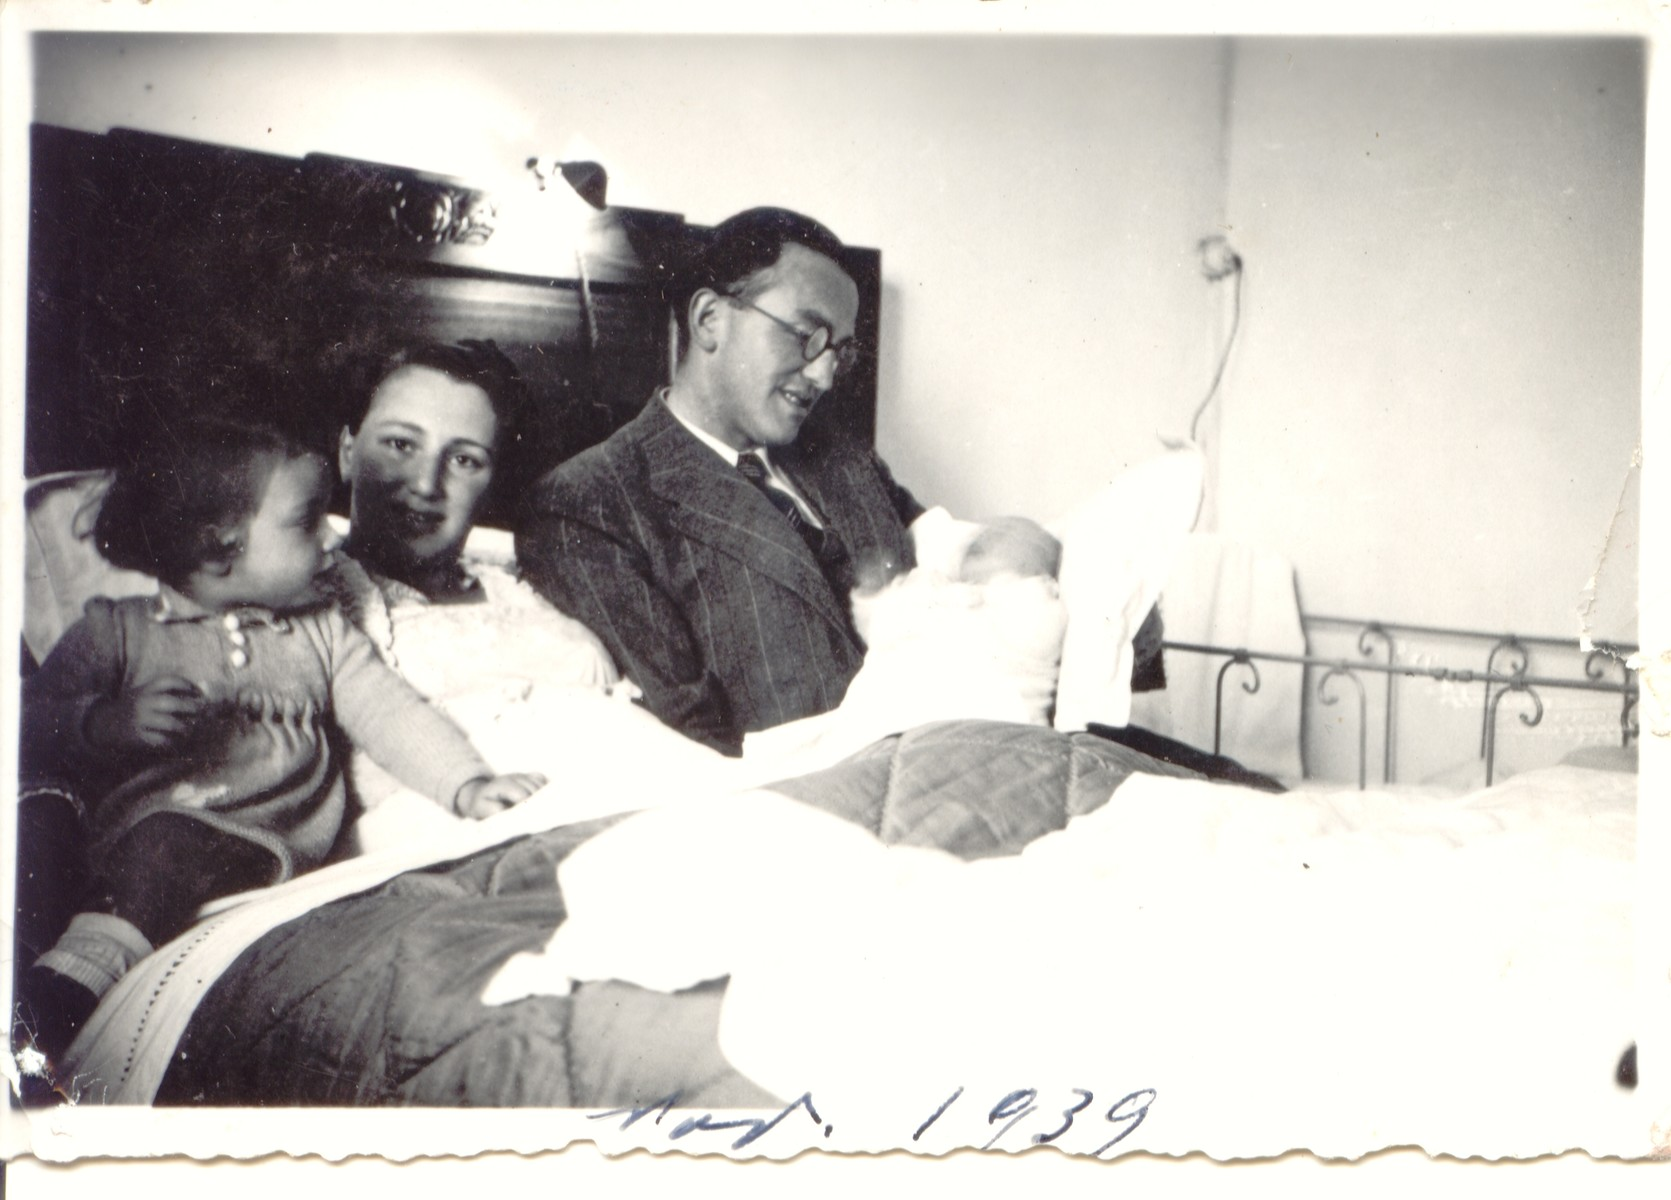 Two Jewish refugees from Alsace pose for a family portrait shortly after the birth of their second daughter.  Pictured are Rene and Germaine Brunschwig and their daughters Arlette and Sylvie.